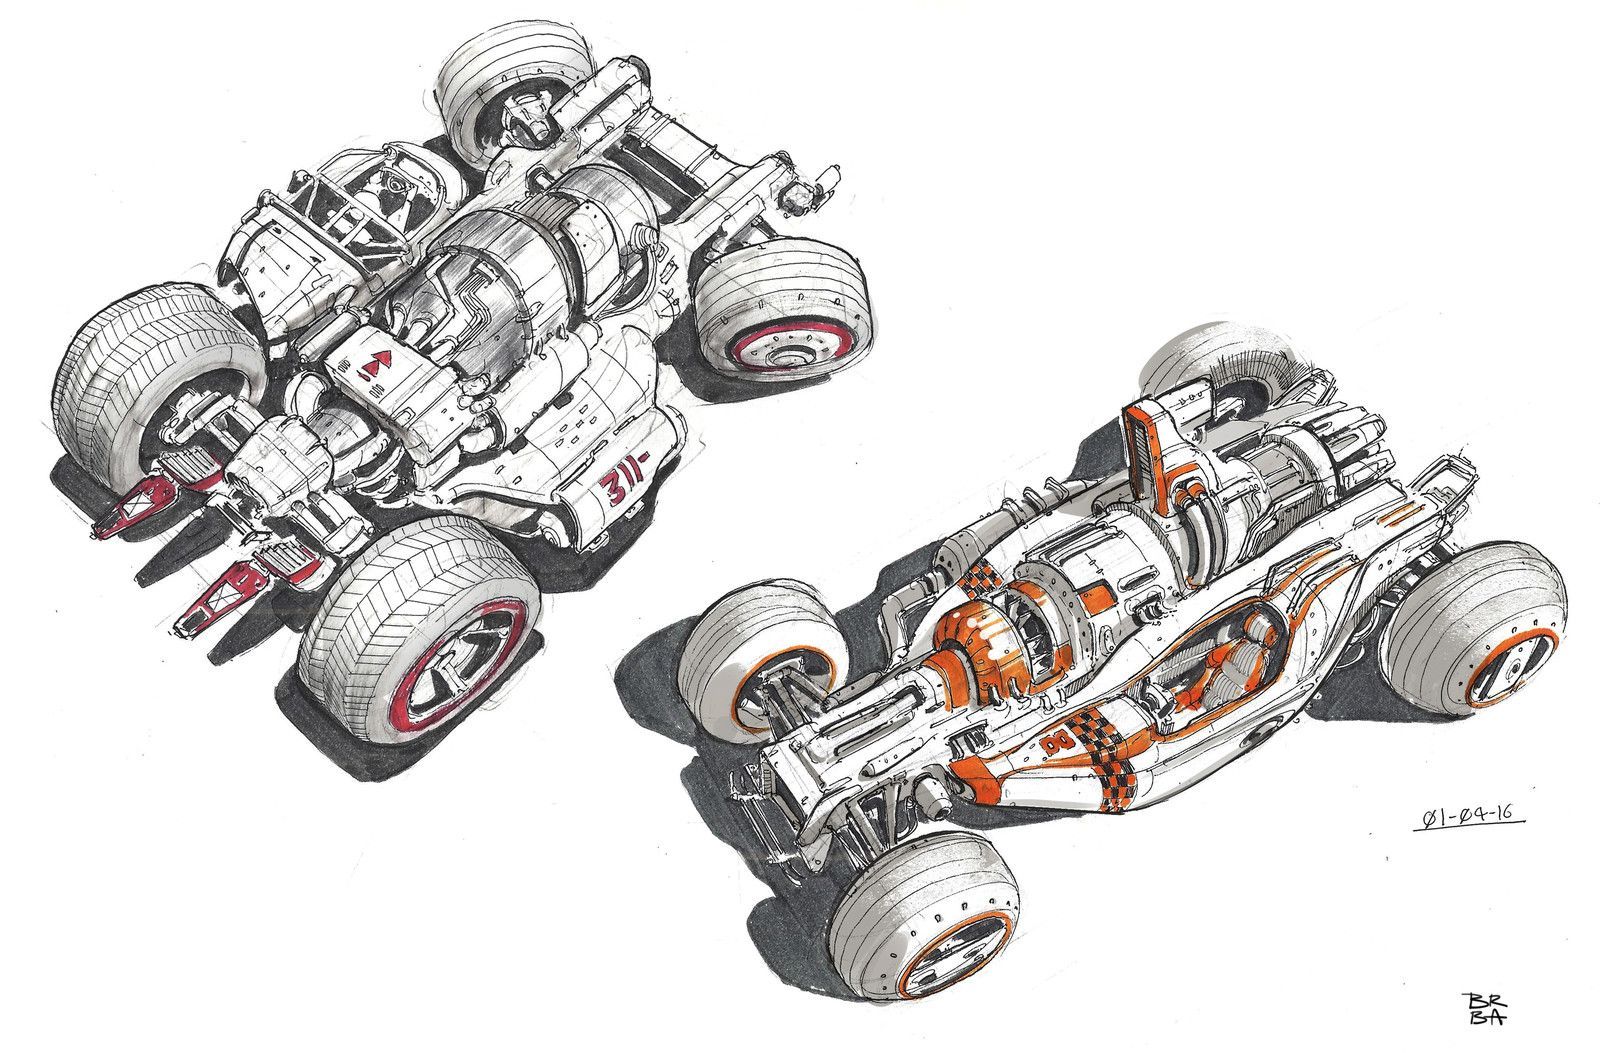 Pin by Eric Williams on vehicle: wheeled, tracked concept